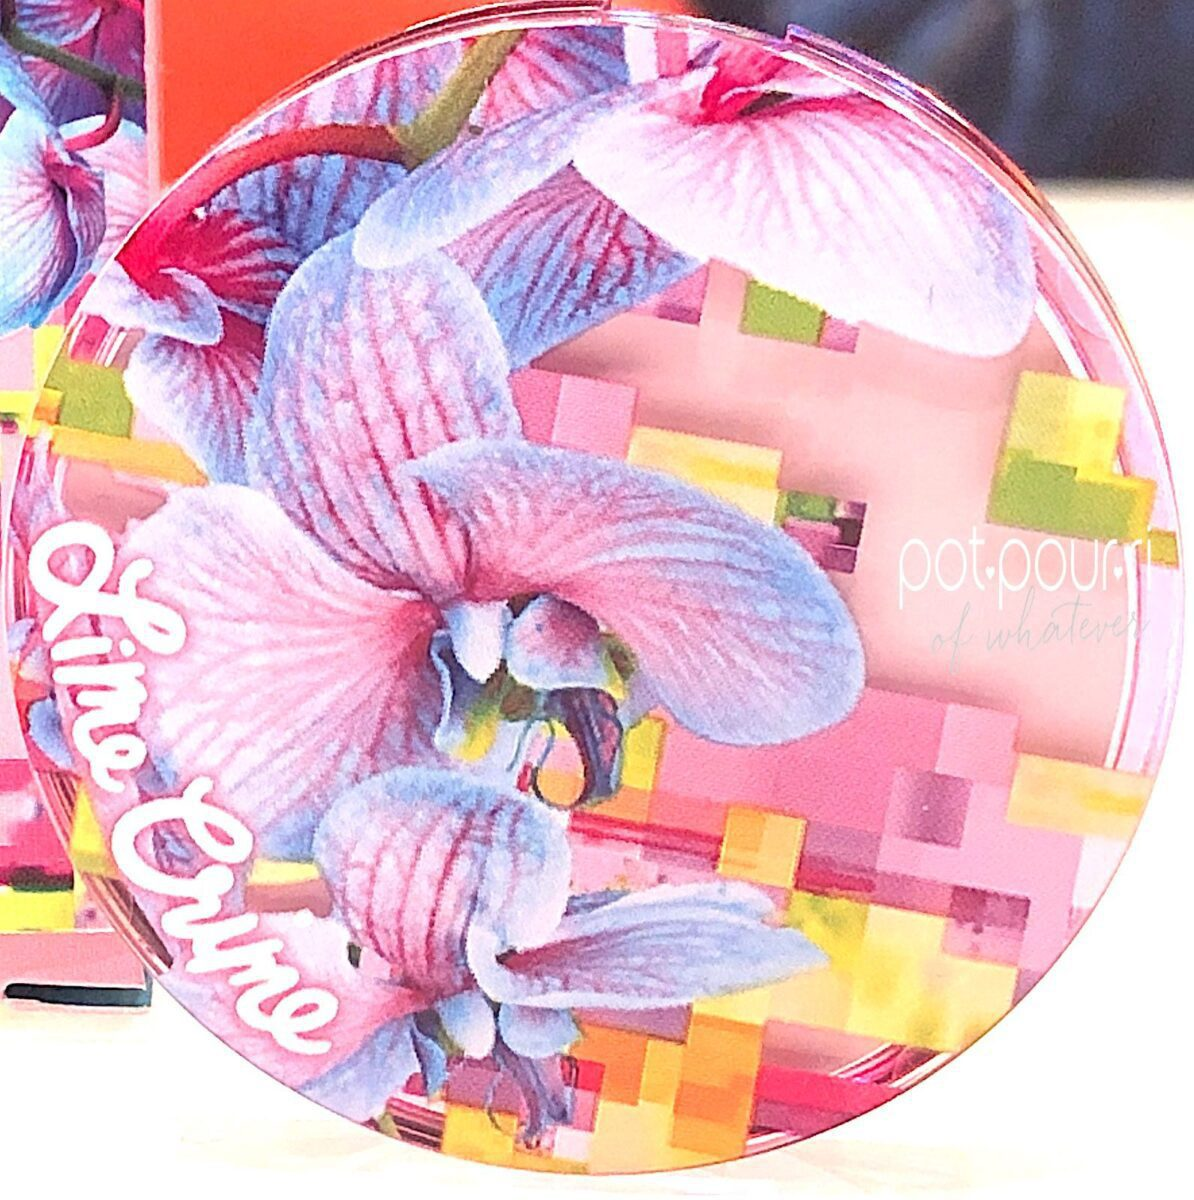 LIME CRIME SOFTWEAR BLUSH COMPACT